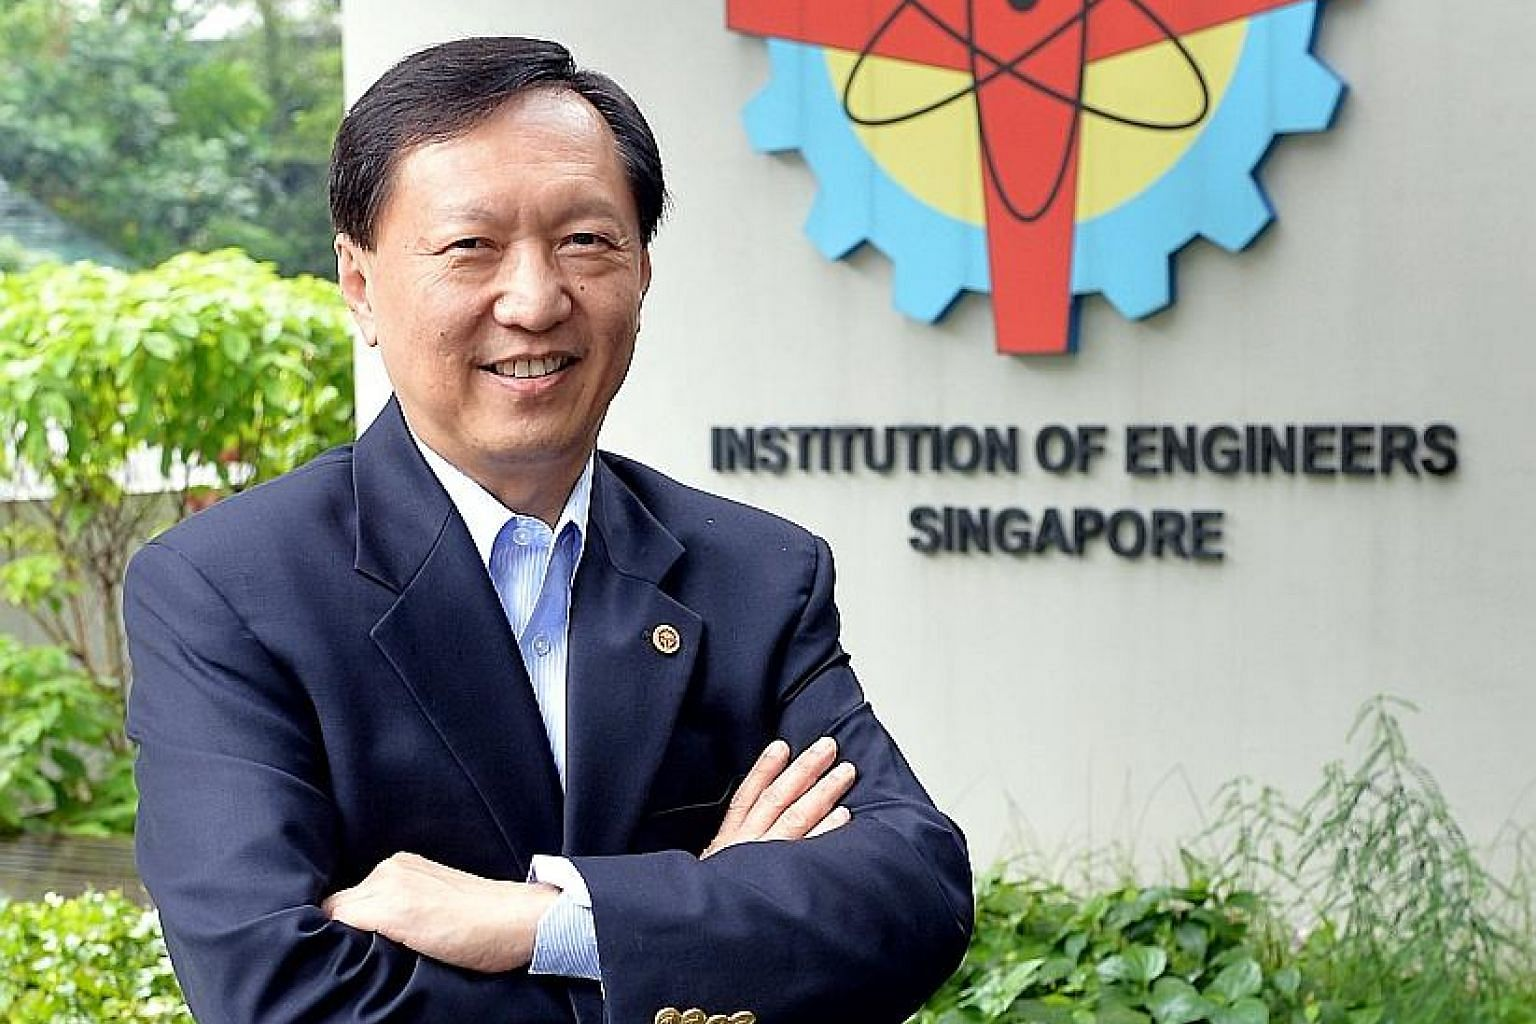 Dr Yeoh Lean Weng plans to sign up technicians and master craftsmen with Institute of Technical Education or polytechnic qualifications as associate members of The Institution of Engineers, Singapore.